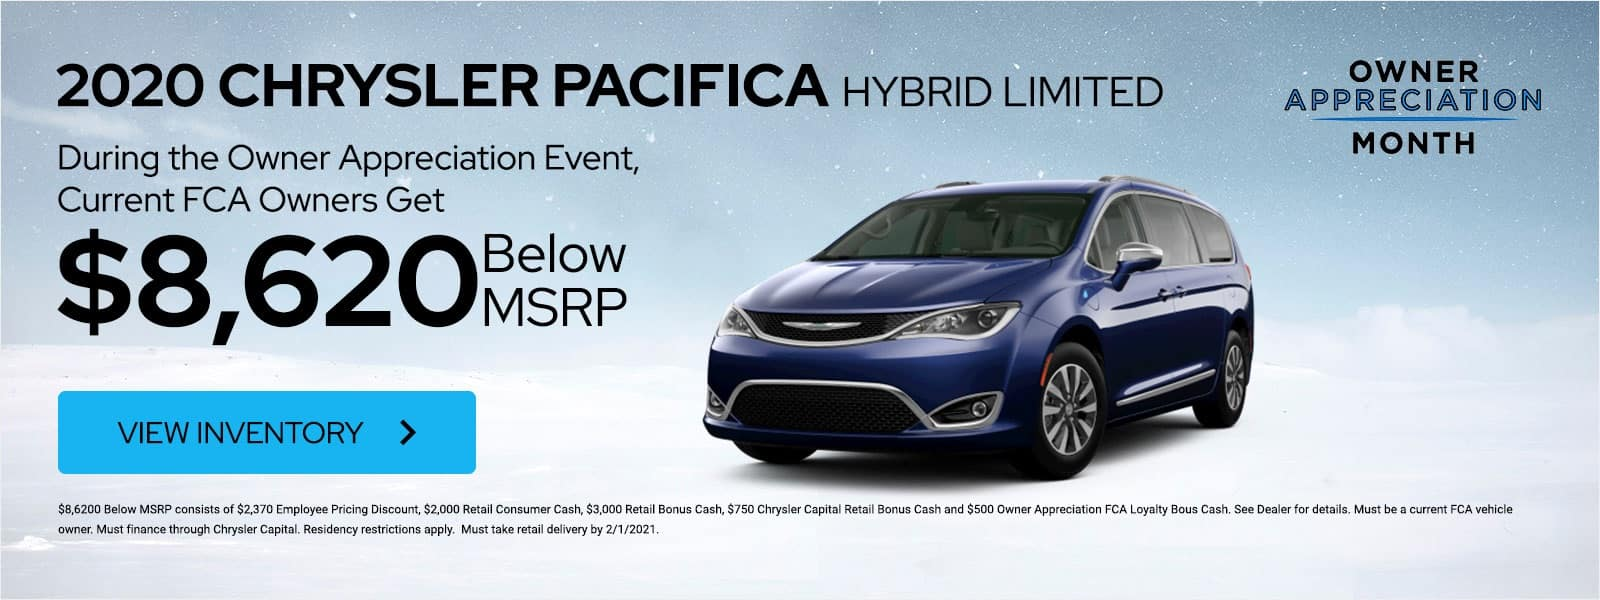 Pacifica-Hybrid-Limited_v2 RETAIL (All Markets) (1) (1)